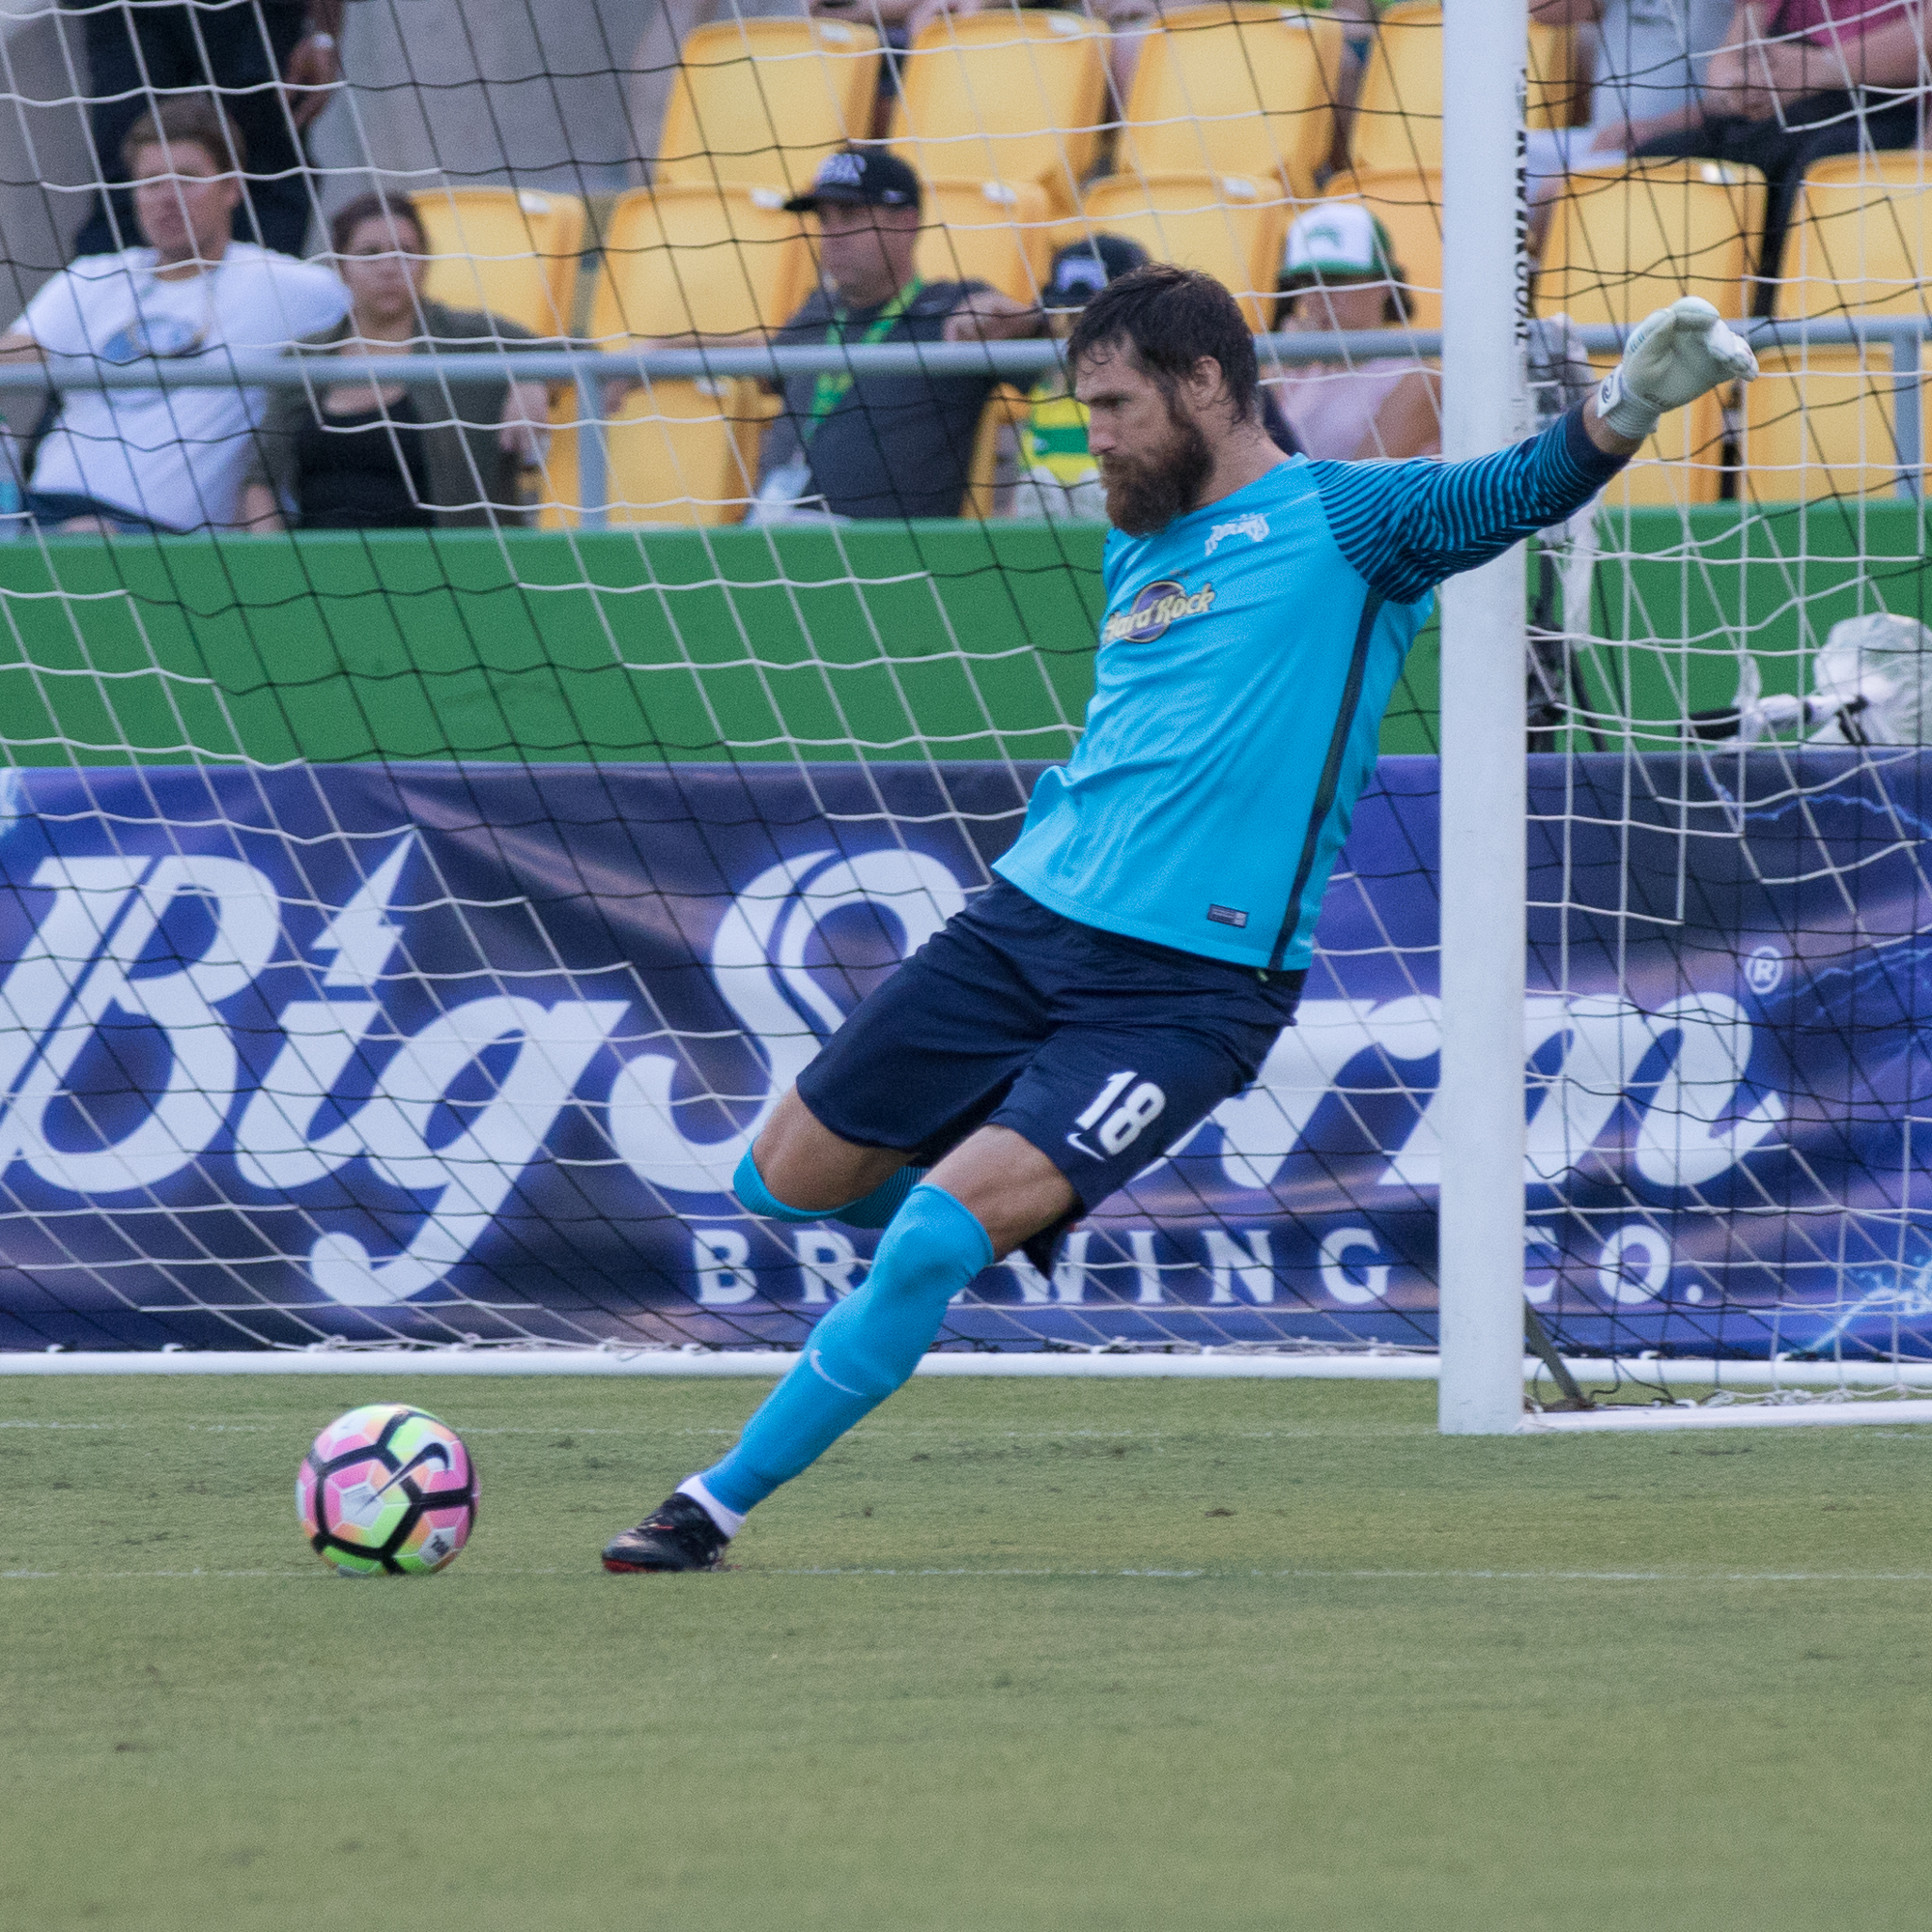 Pickens had another clean sheet in his 100th game./STEVEN MUNCIE